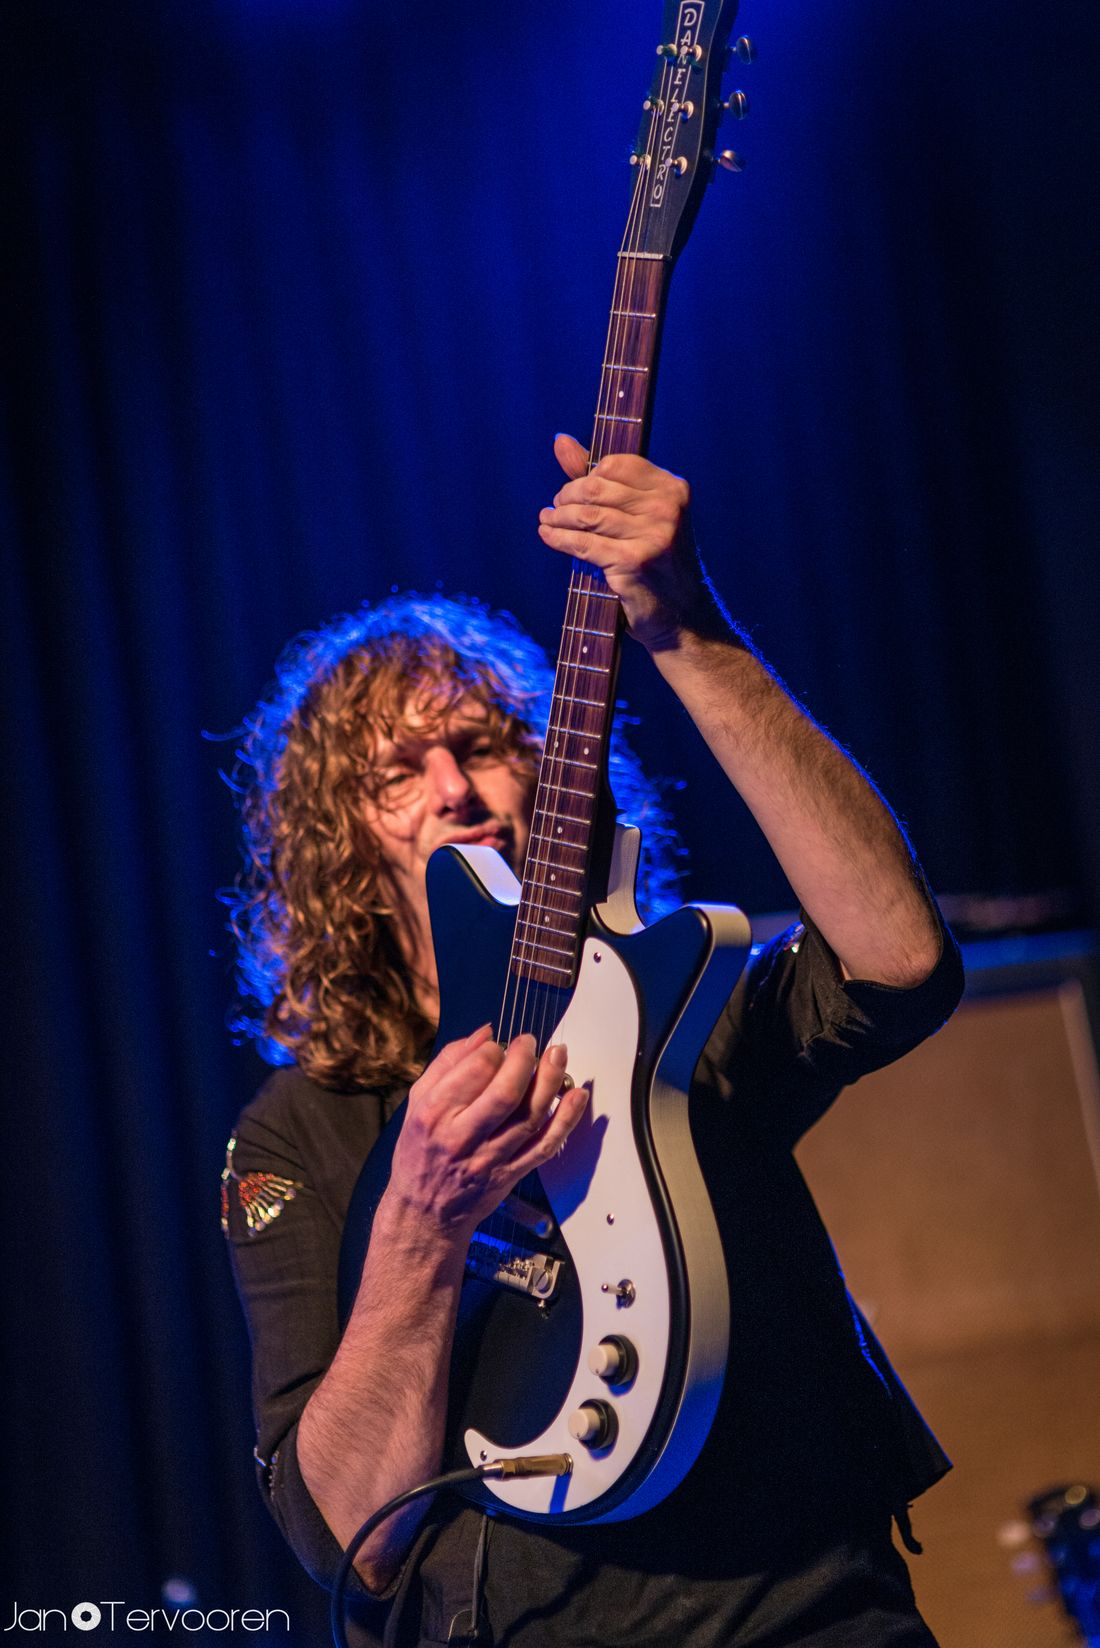 Lead Zeppelin - Led Zeppelin Coverband am 18.10.2015 live im blues in Rhede